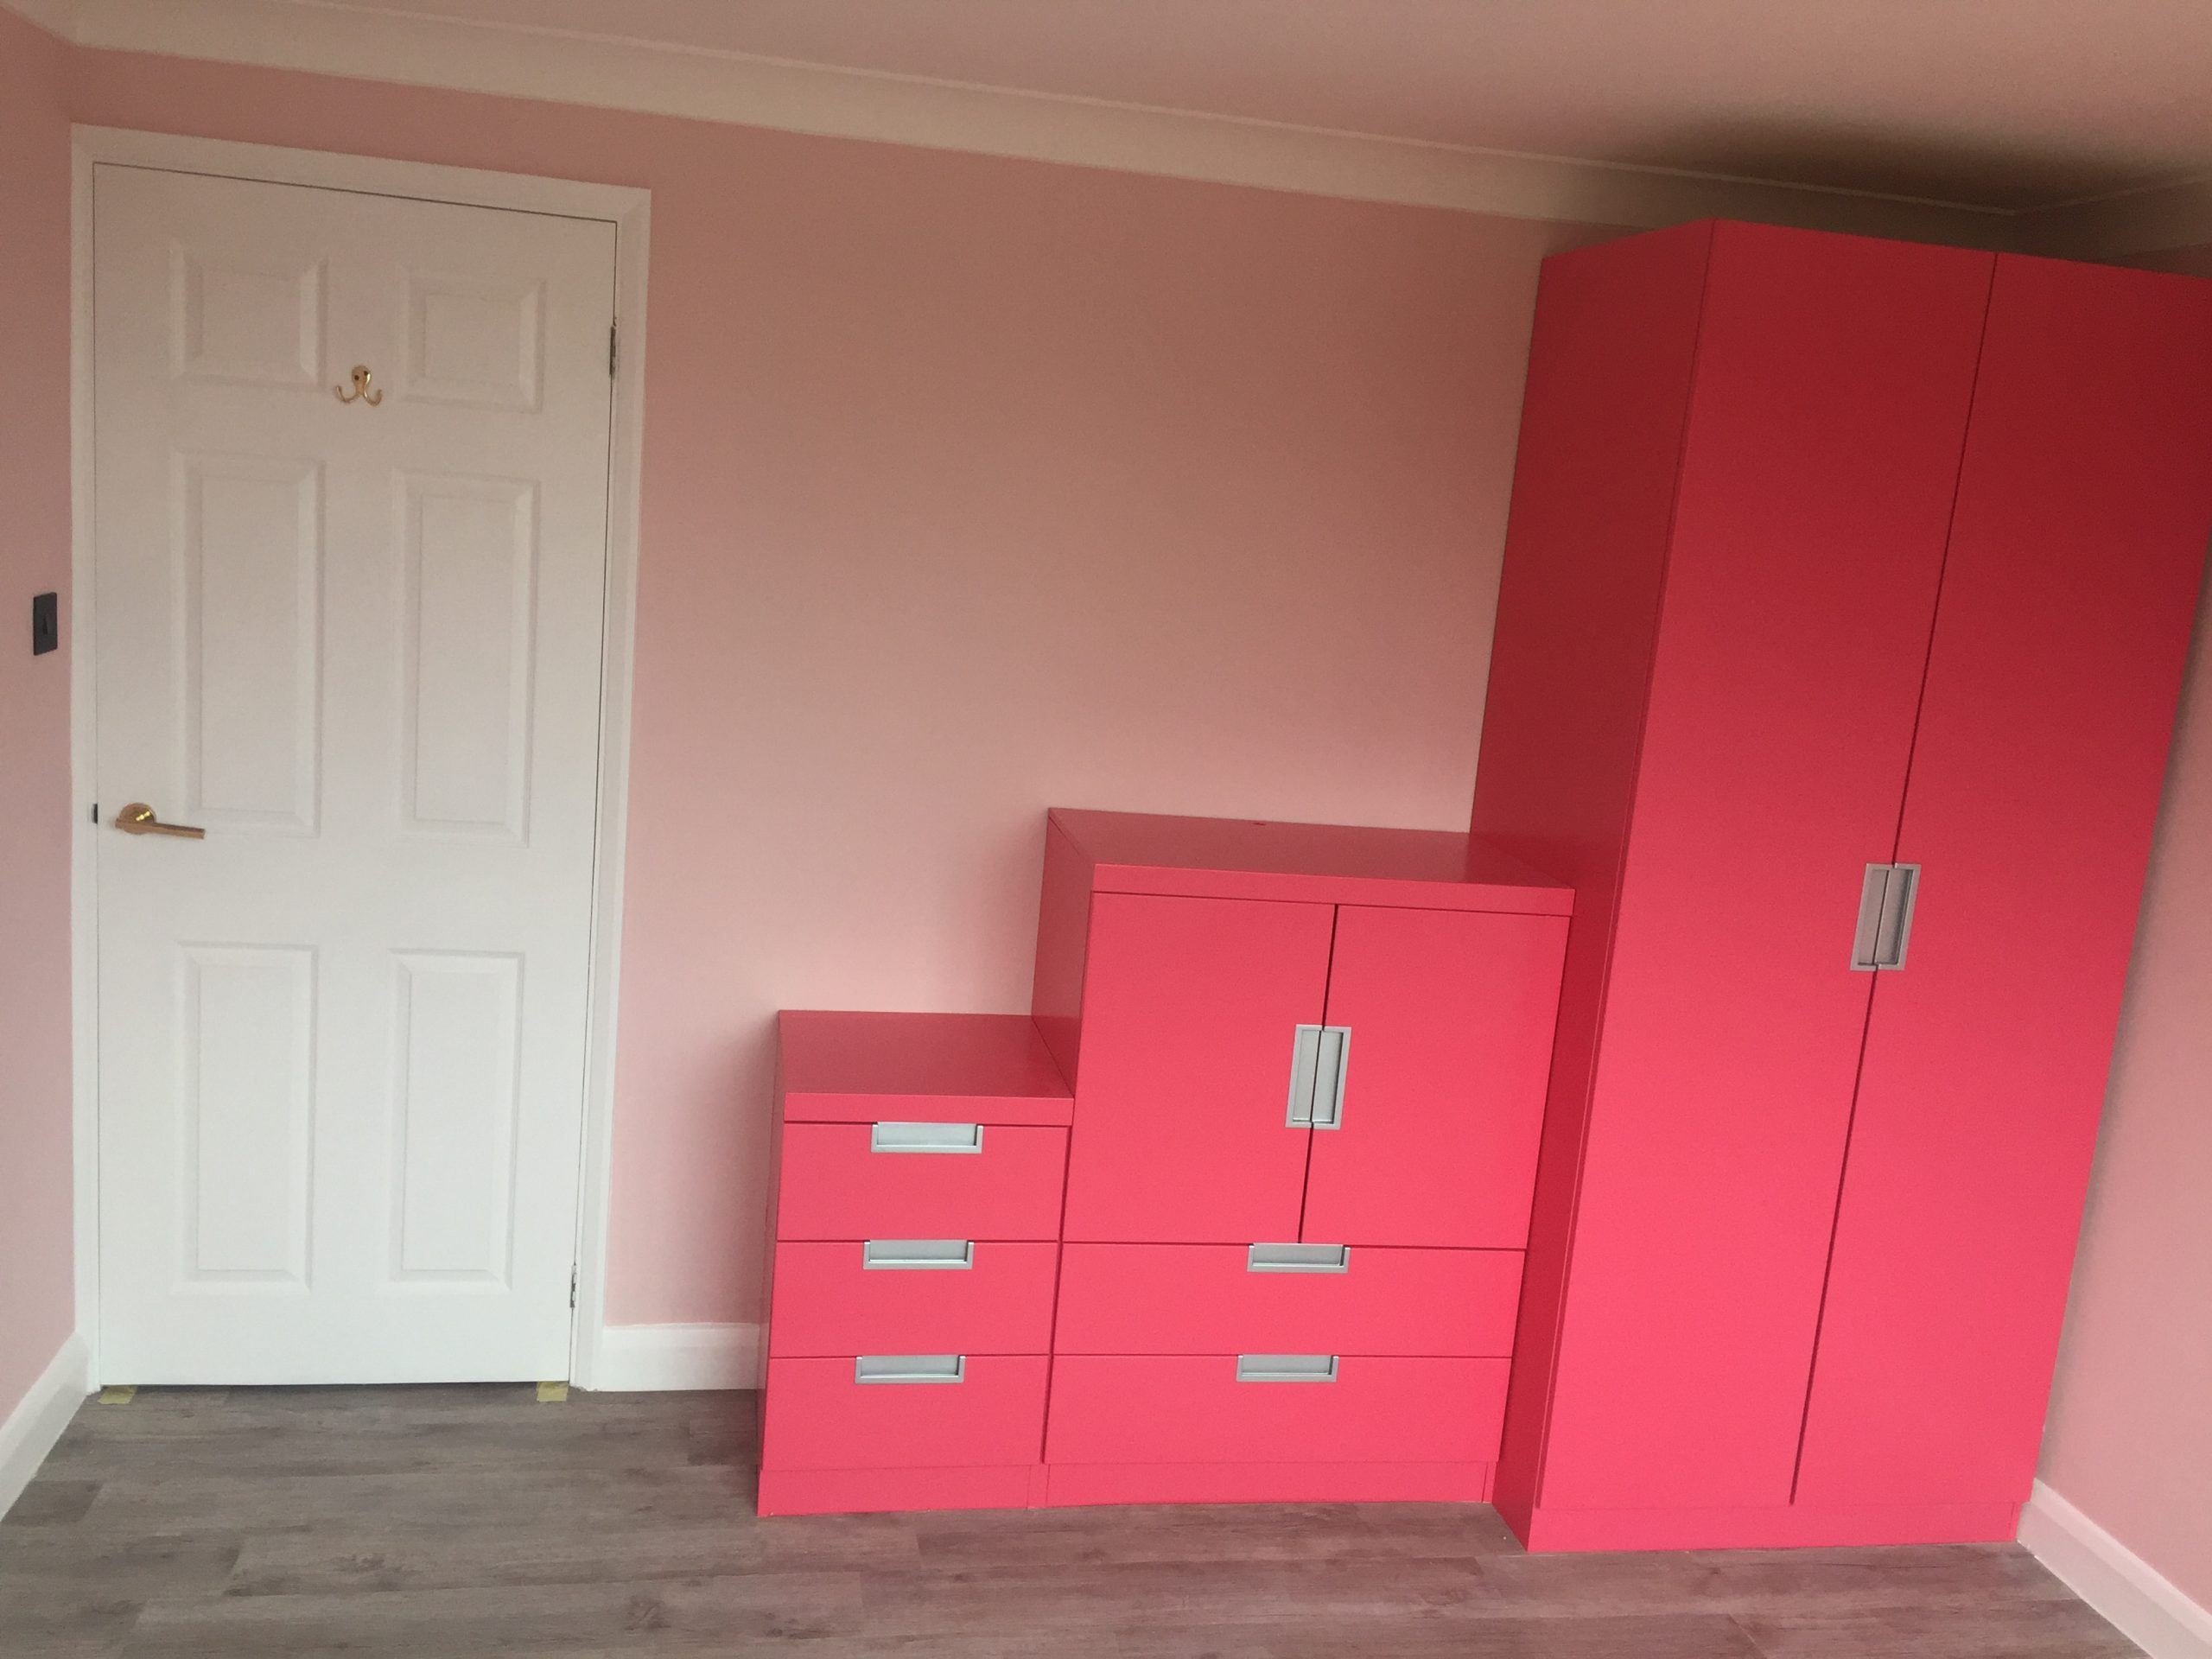 Cabinet Spraying Furniture Respray Milton Keynes Airless Painting